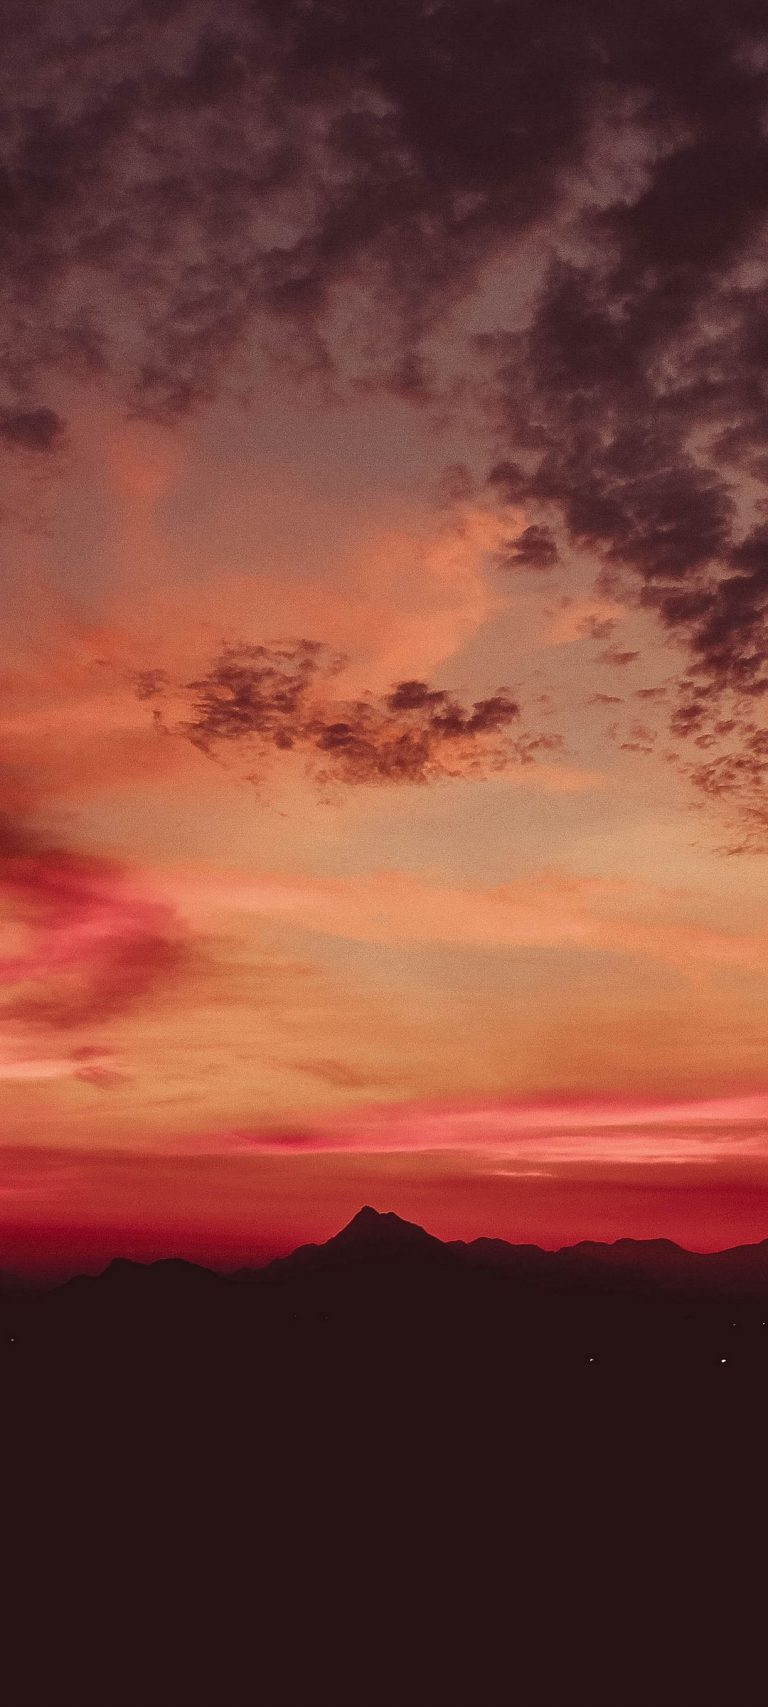 Sunset Mountains Clouds Sky 1080x2400 768x1707